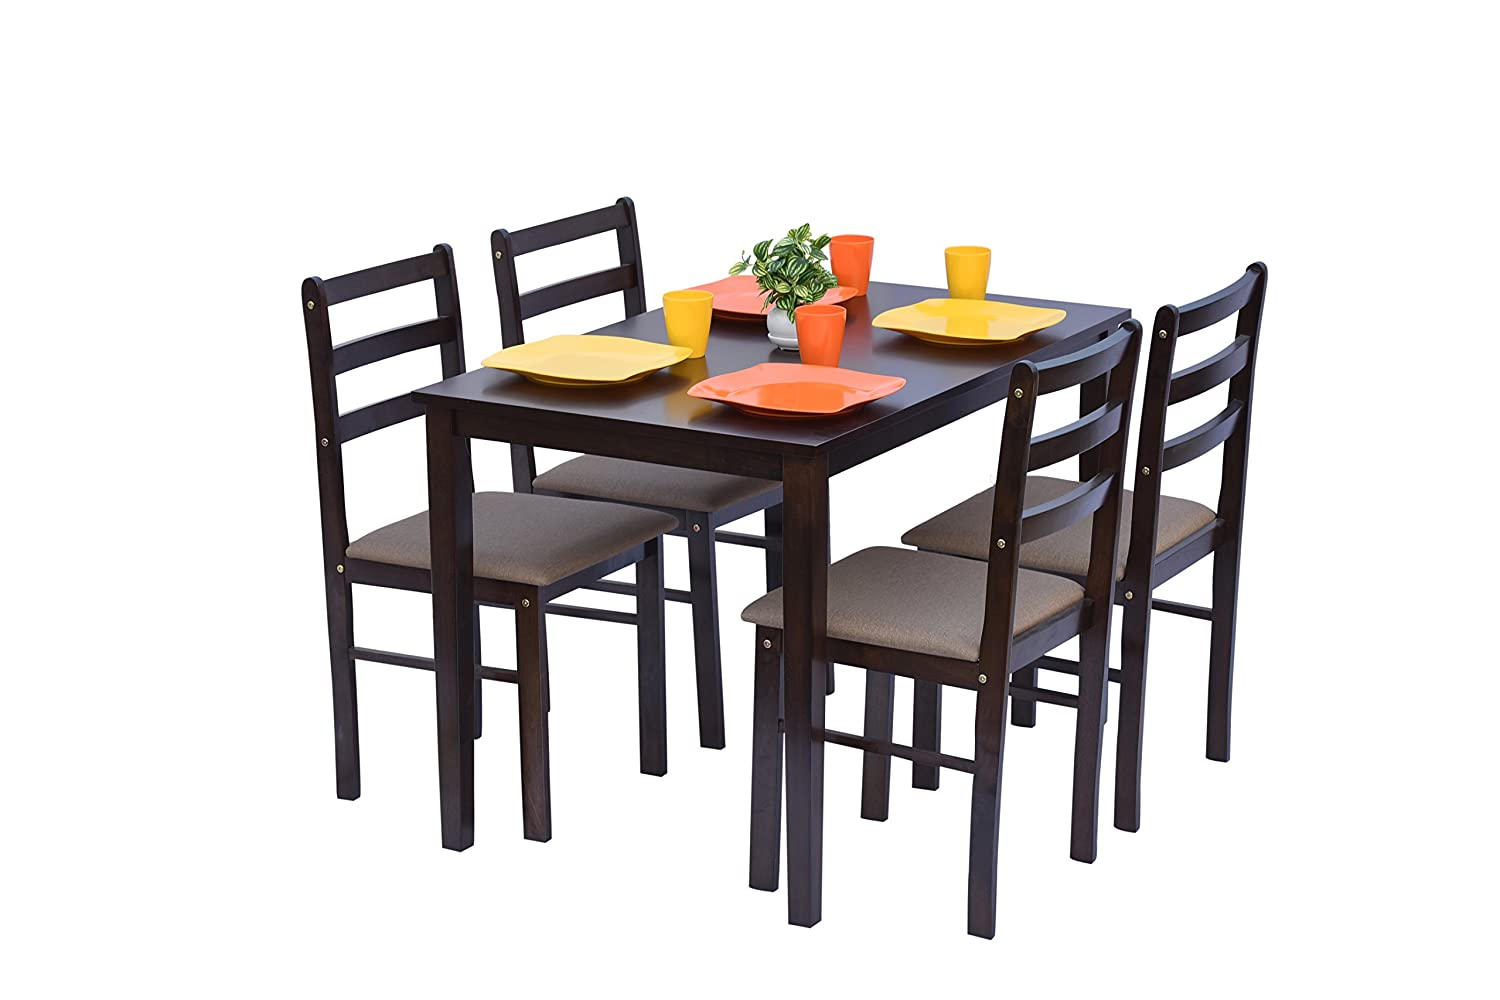 Deckup haven rubber wood and wenge 4 seater dining table set 110x70x74cm brown amazon in home kitchen